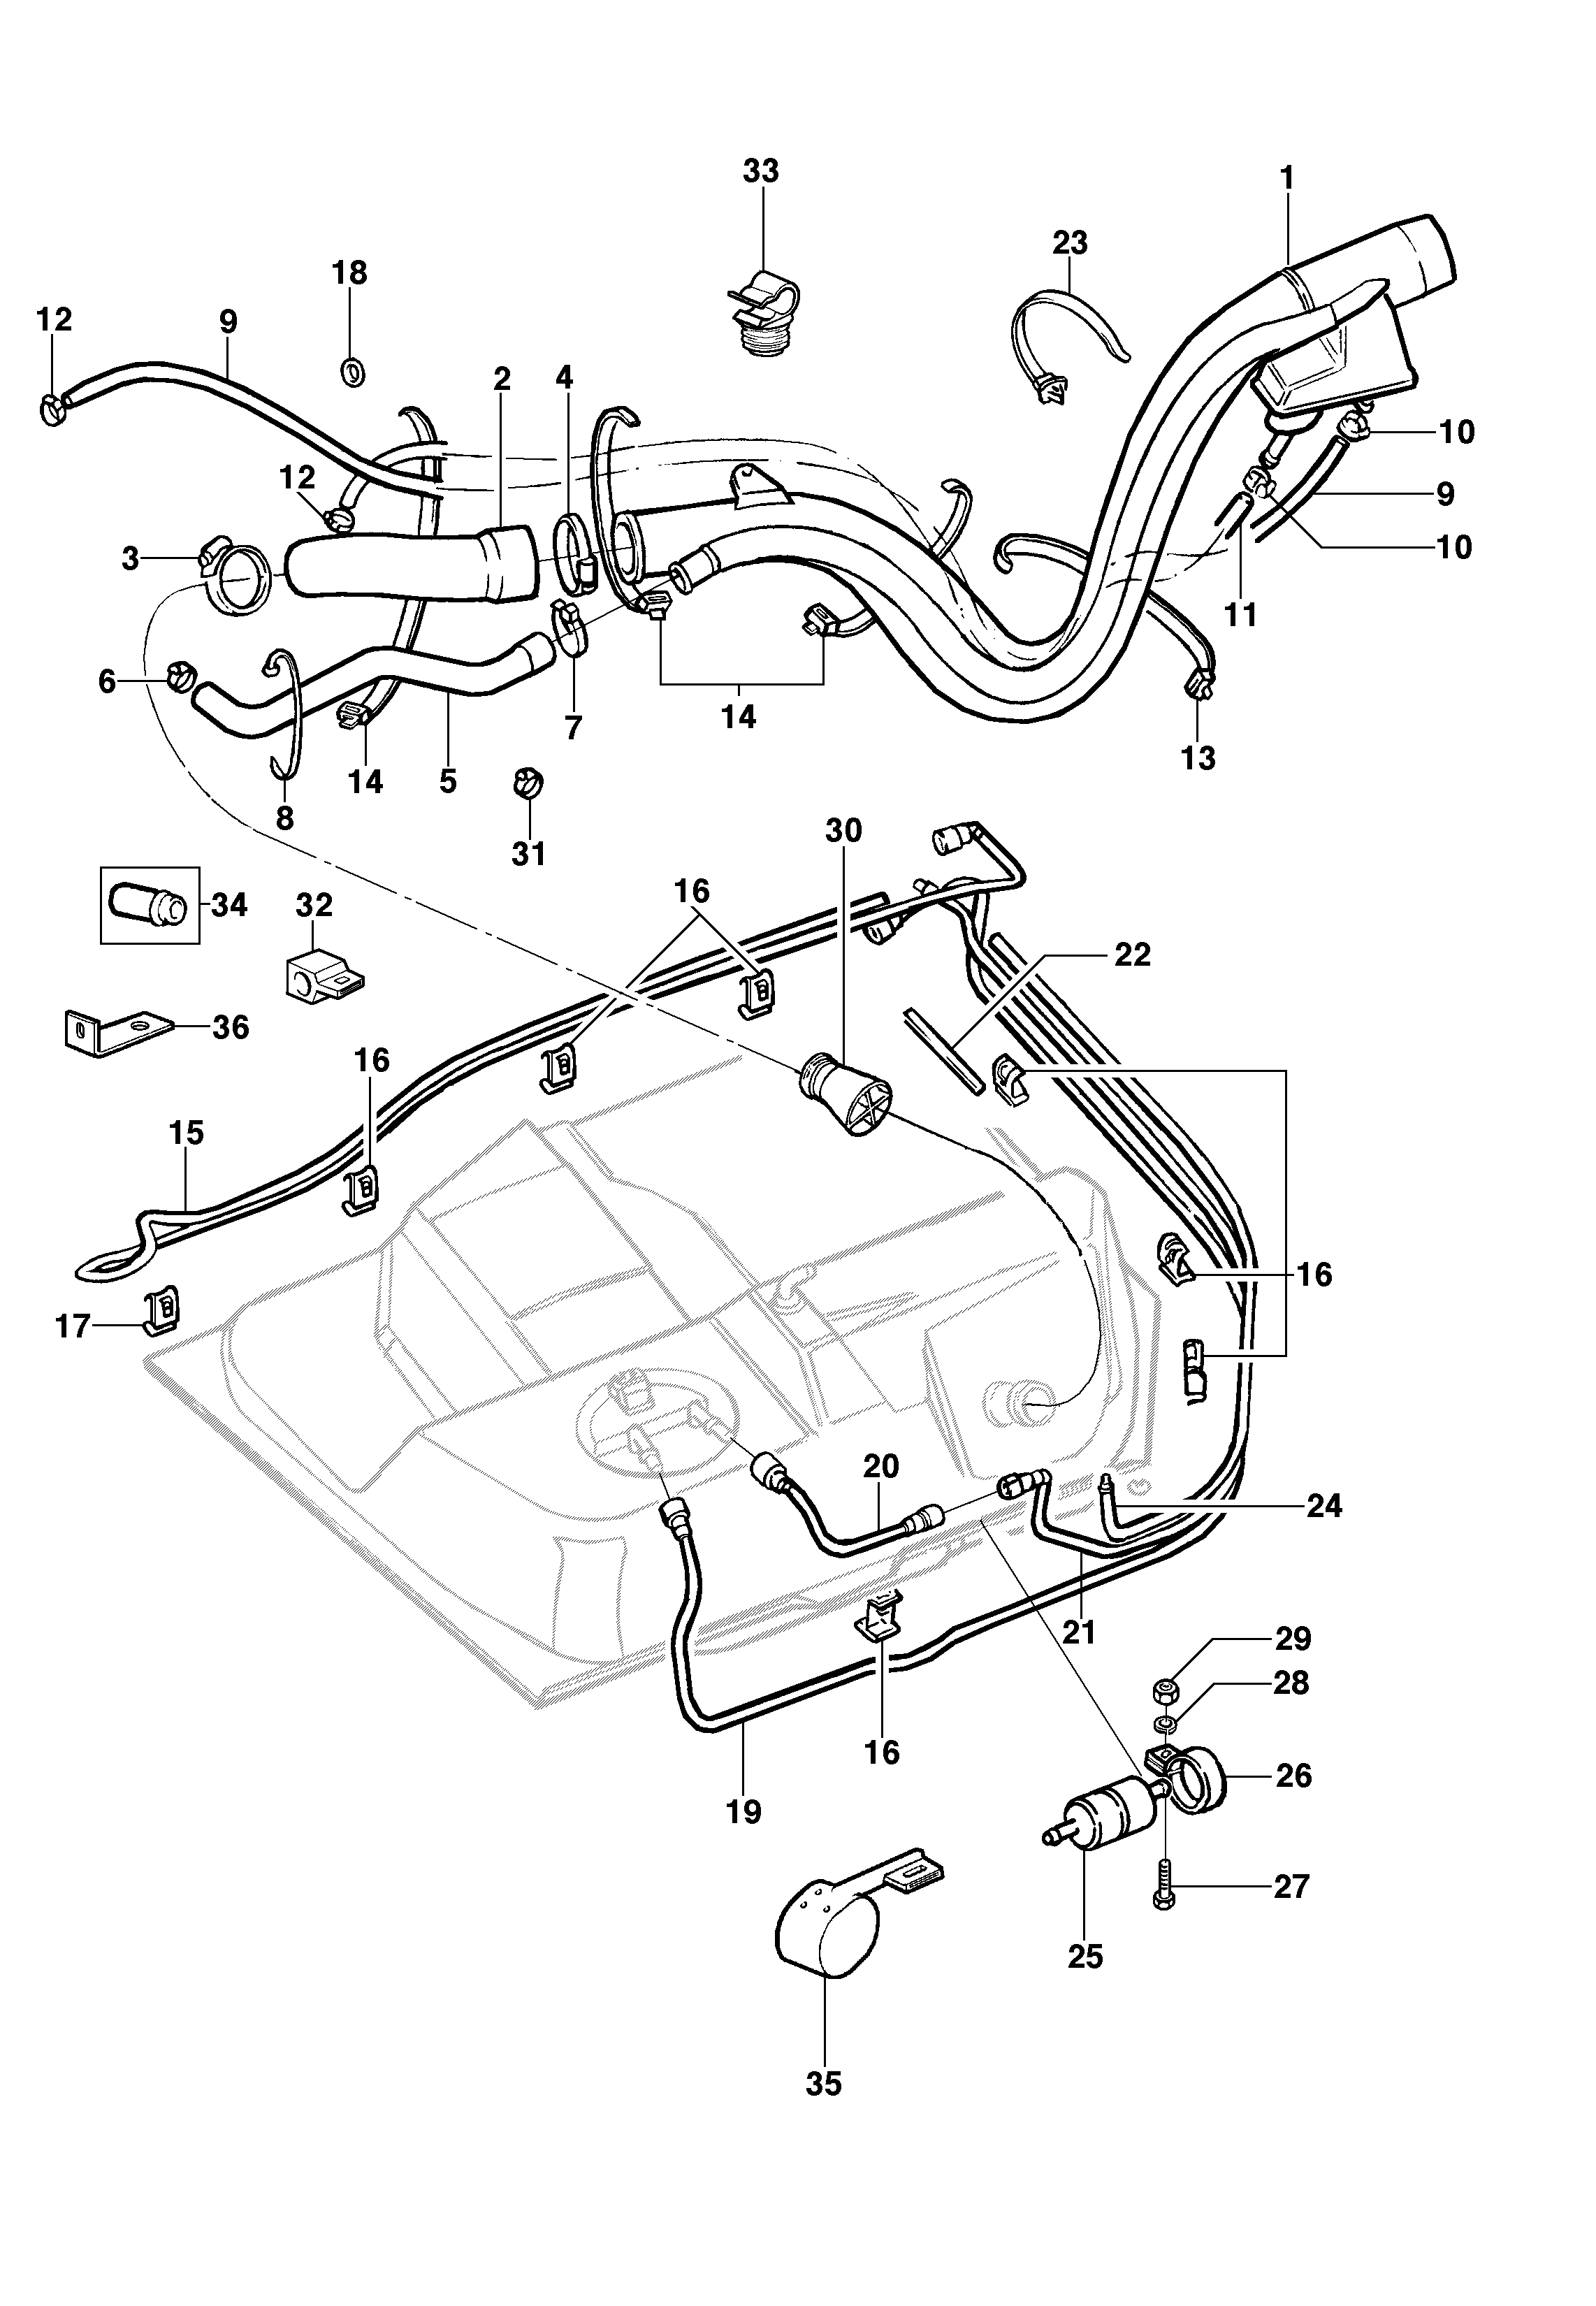 95 Chevy Corsica Exhaust Diagram   Wiring Diagram on